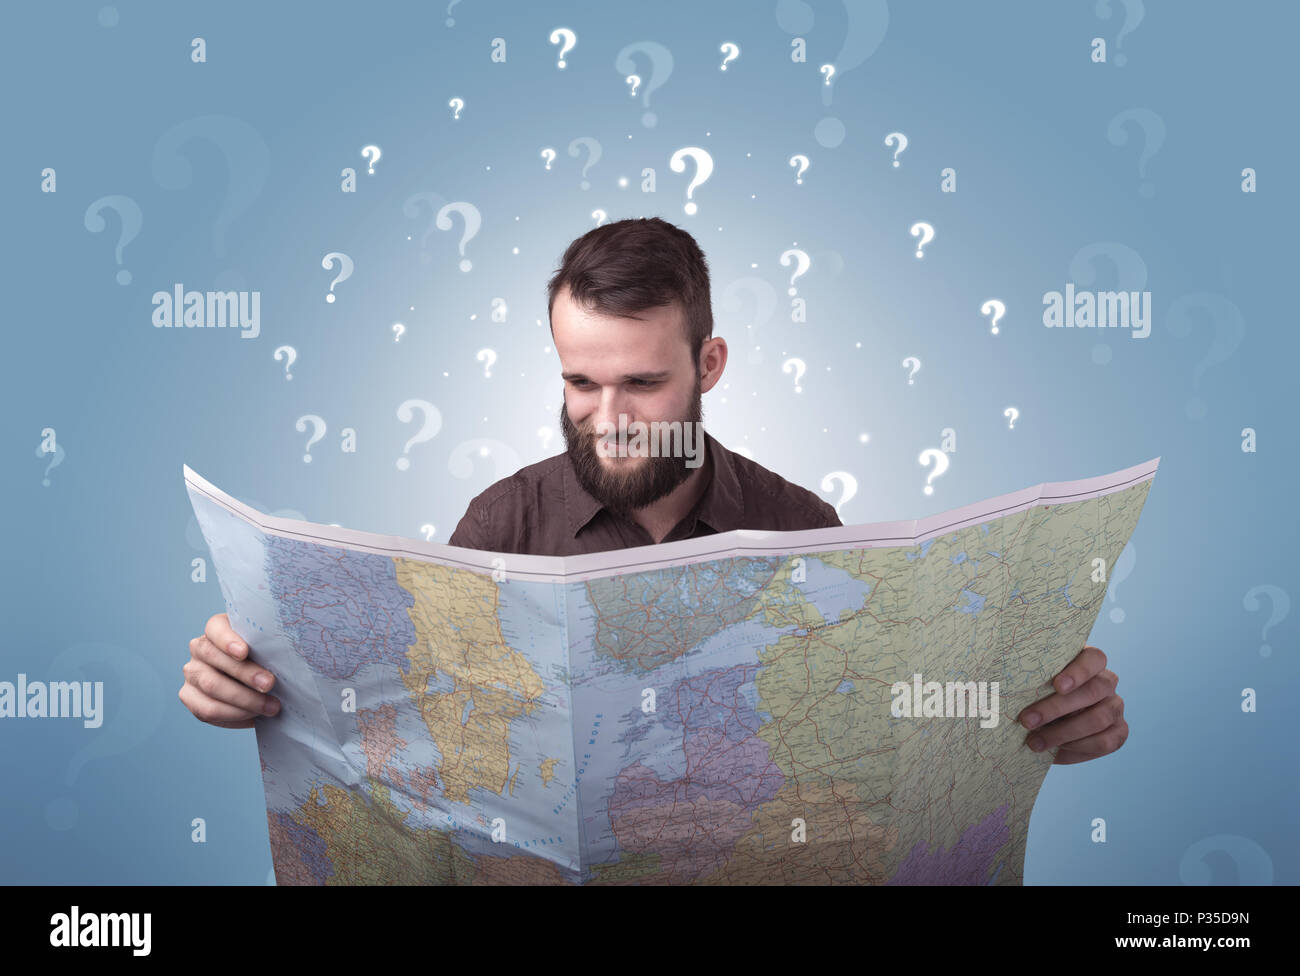 Handsome young man holding a map with white question marks above his head - Stock Image